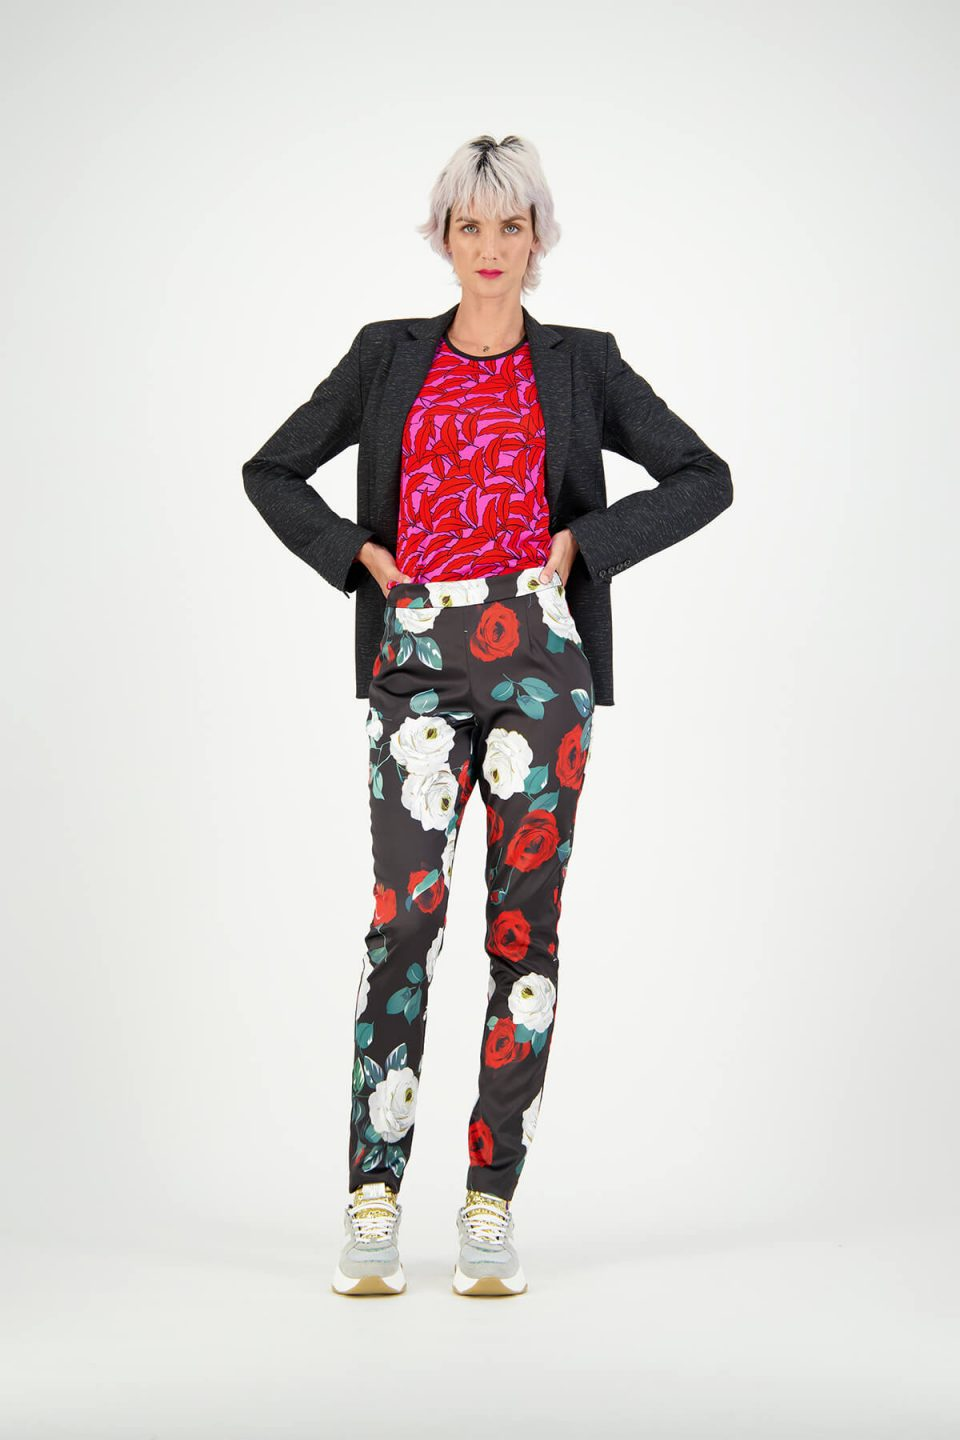 Women's fashion model studio photoshoot wearing floral pants, red tee and black blazer over the top